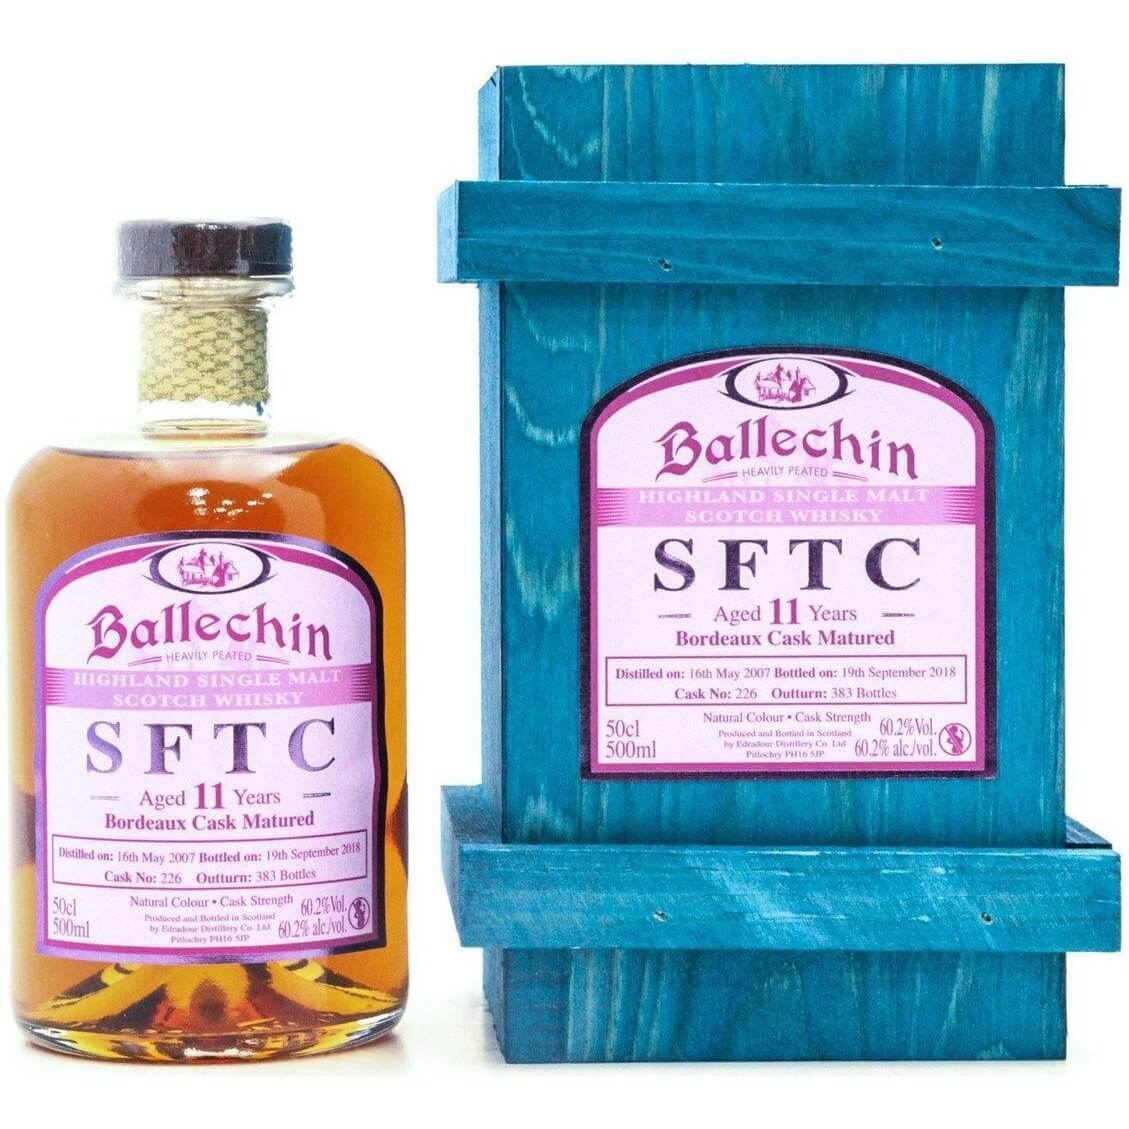 Ballechin 2007 Straight From The Cask Bordeaux Matured - 50cl 60.2%